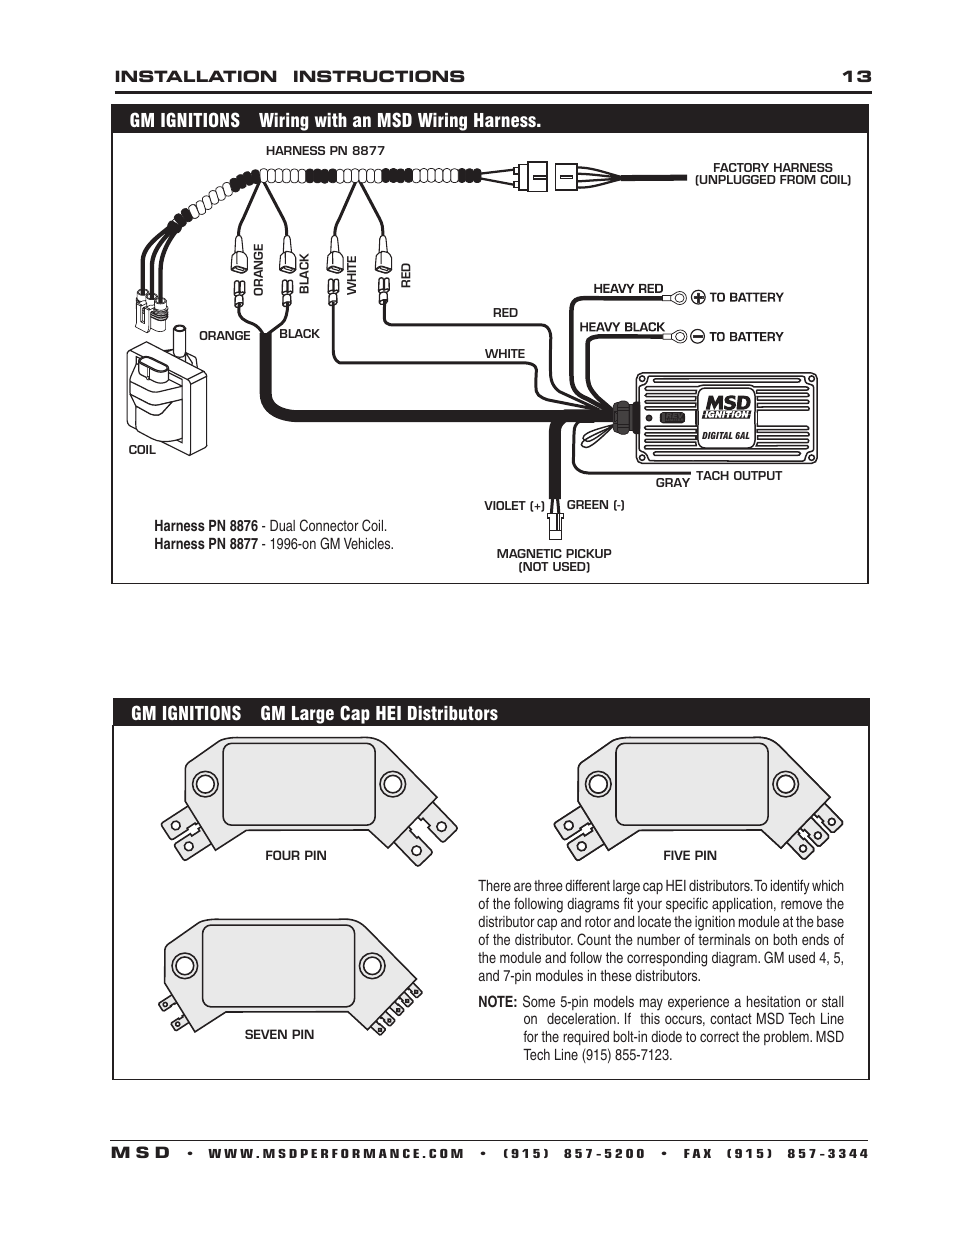 hight resolution of gm ignitions wiring with an msd wiring harness gm ignitions gm gm hei distributor to msd 6200 msd digital 6a wiring harness